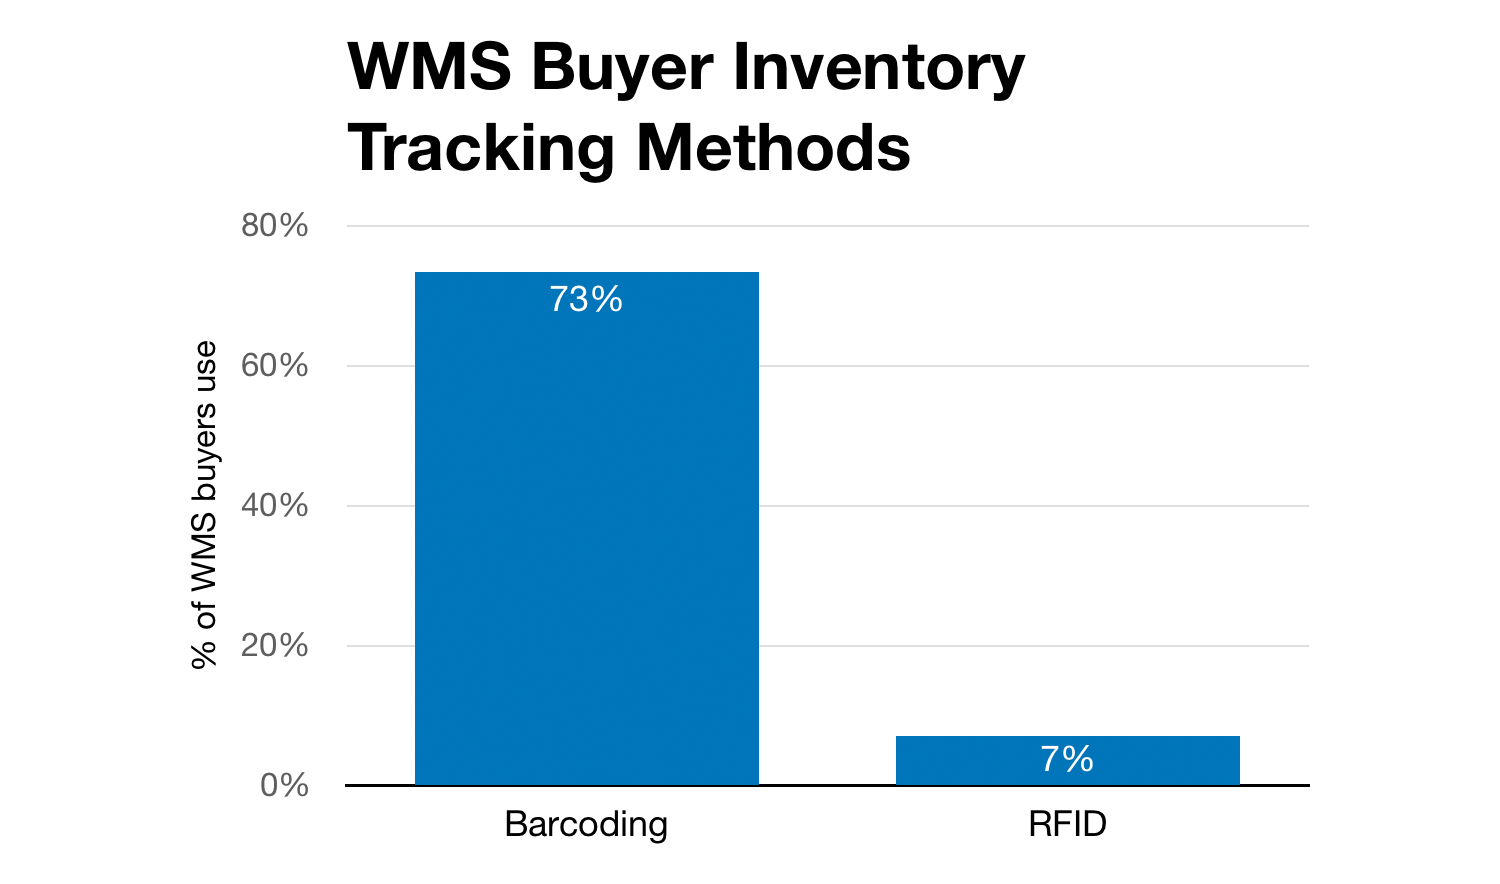 Chart of barcode vs. RFID preferences